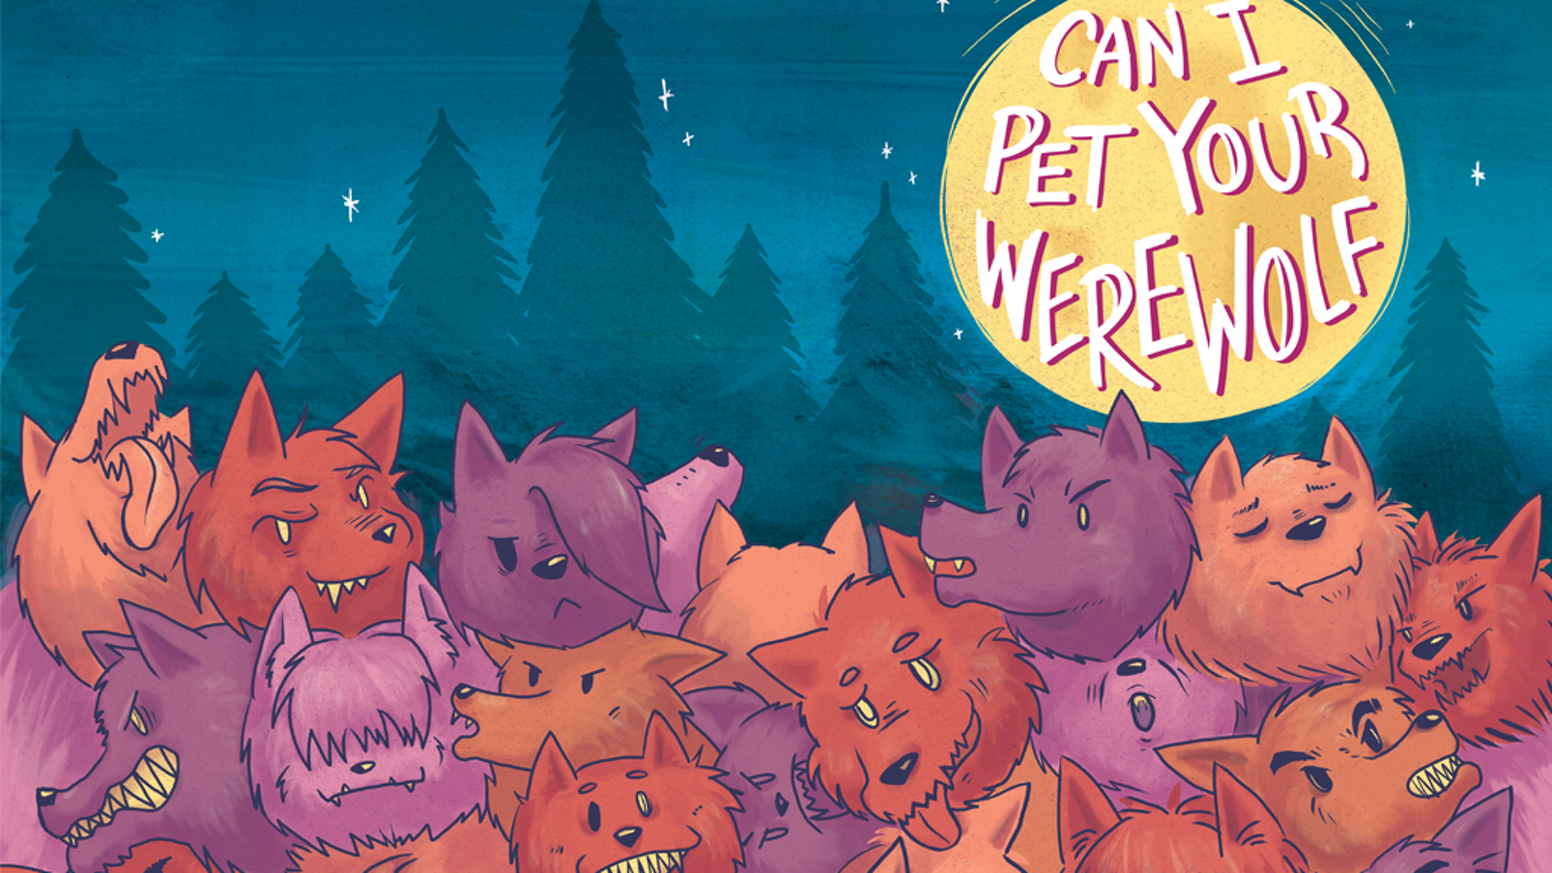 can i pet your werewolf by kel mcdonald community kickstarter